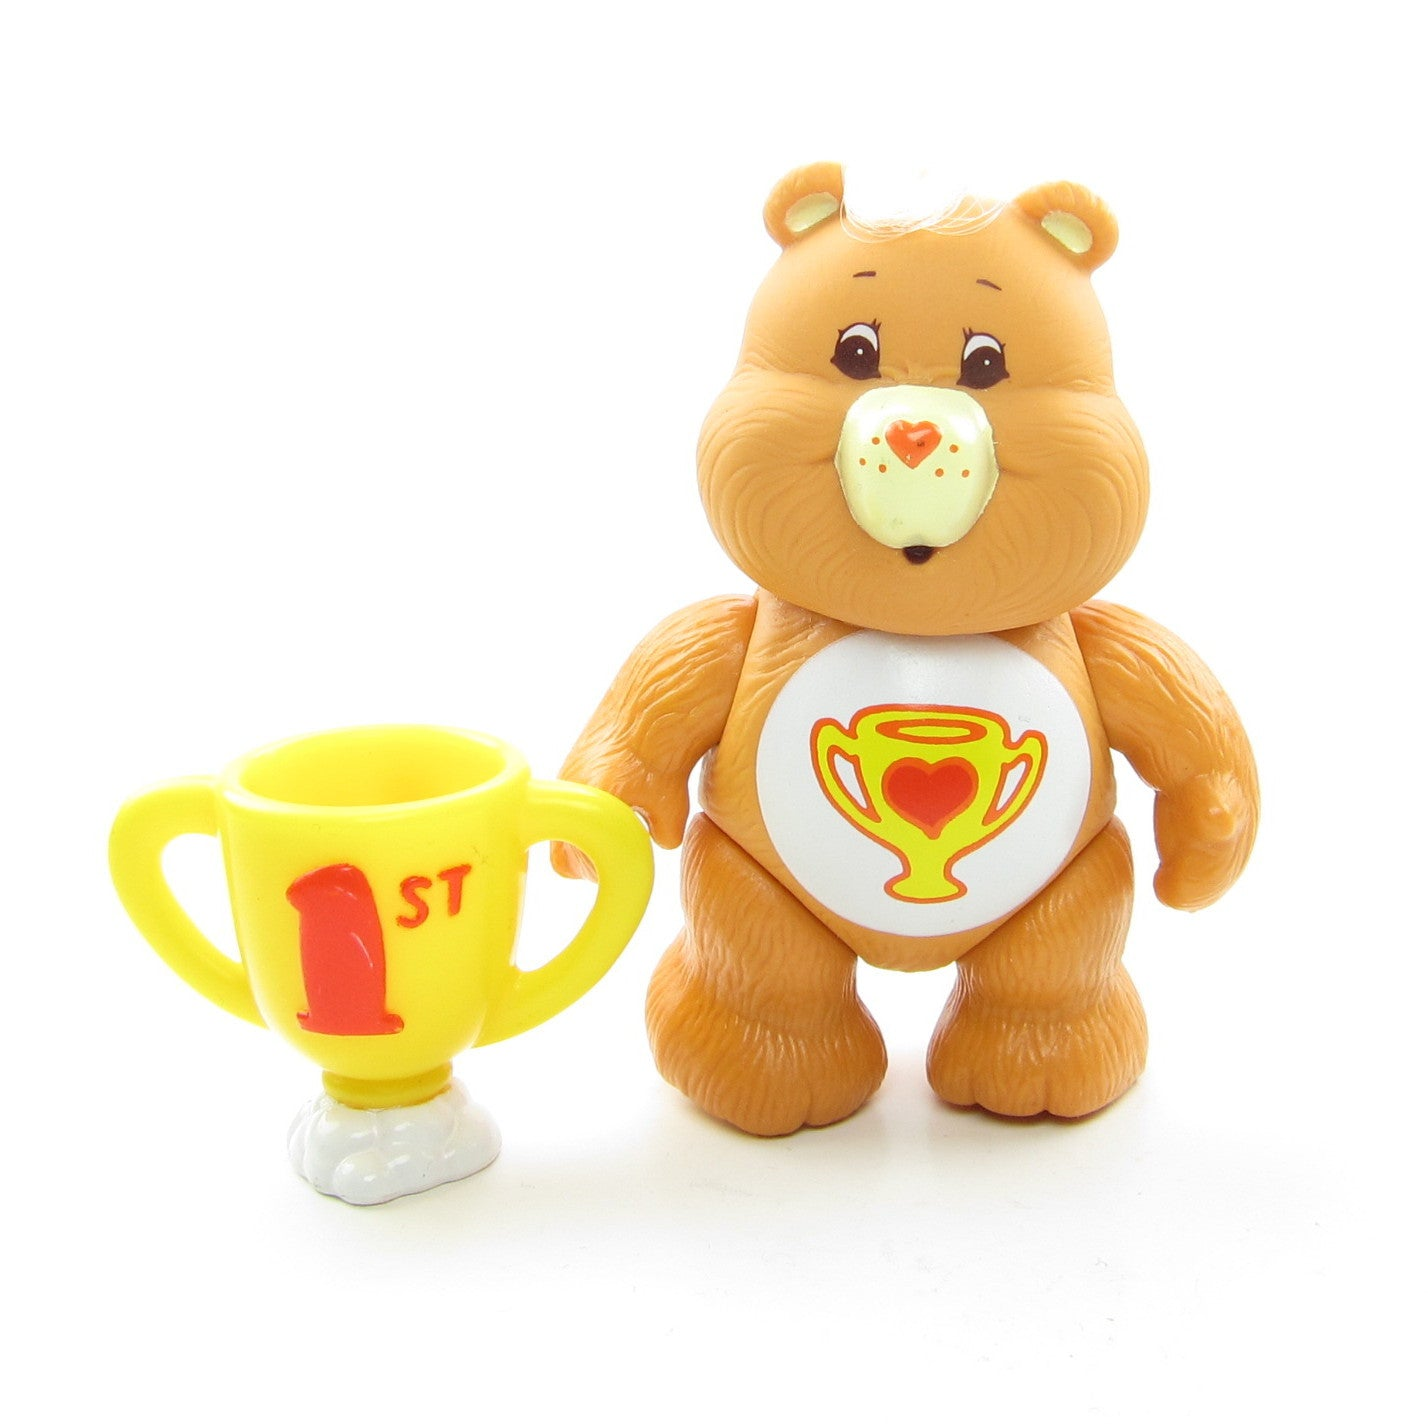 Champ Bear Care Bears poseable figure with Good Sport Trophy